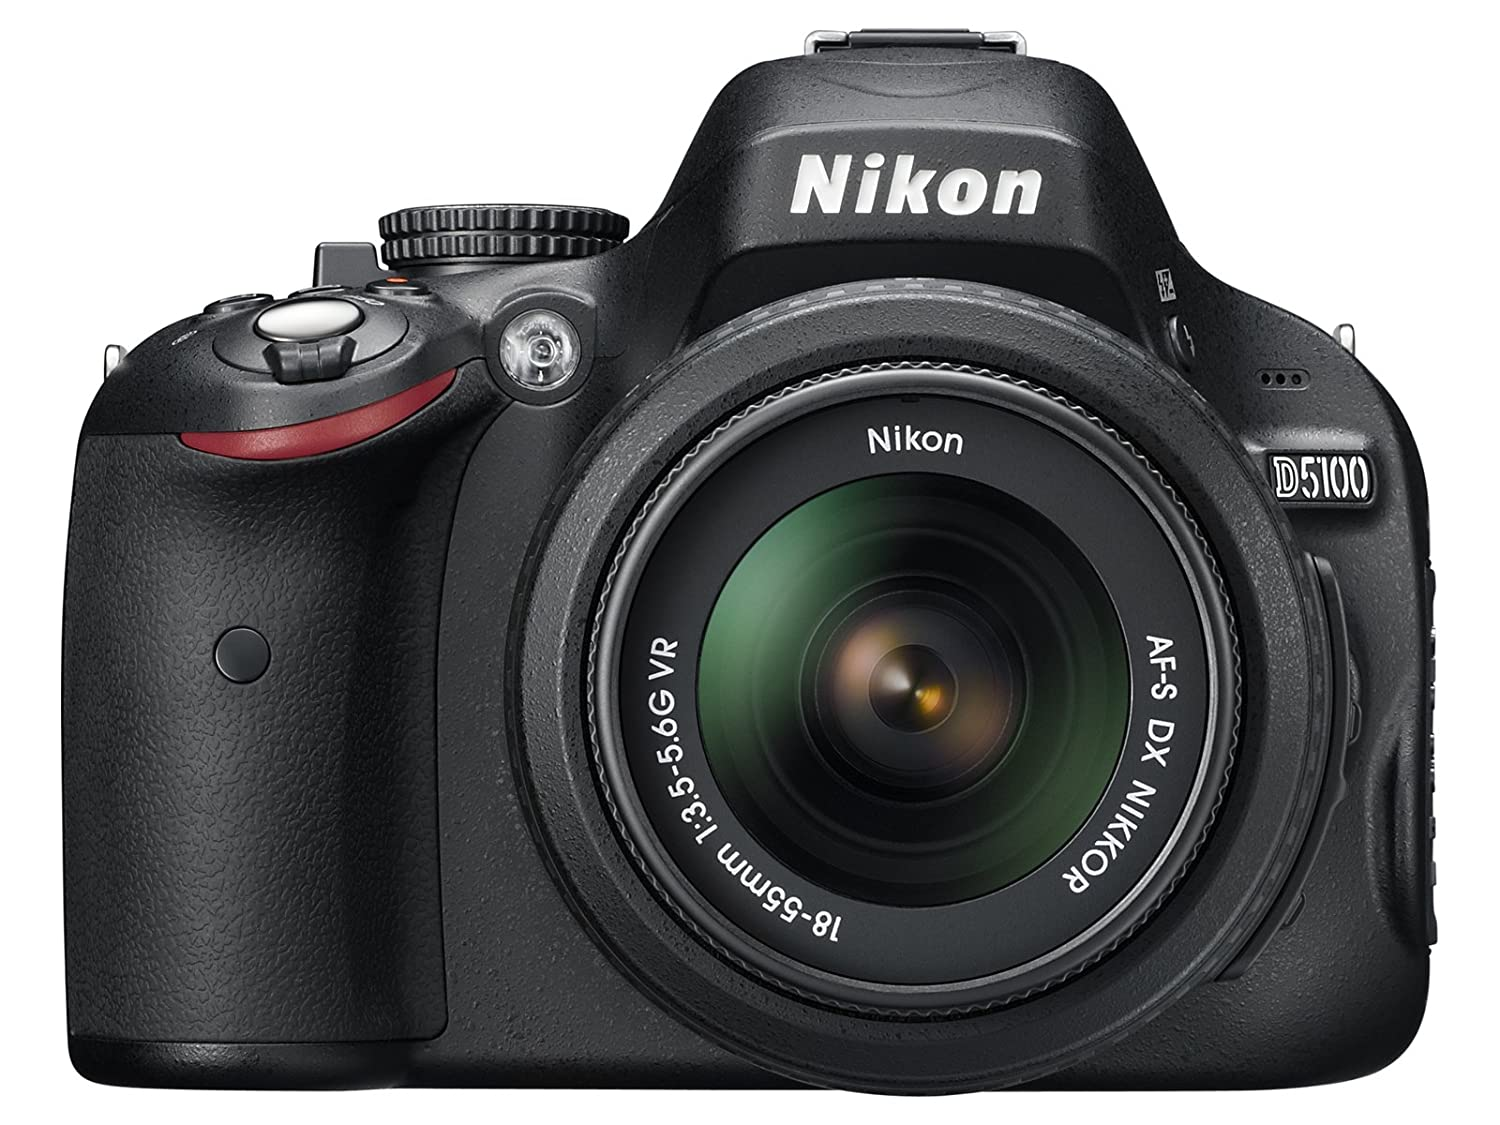 Nikon D5100 16.2MP CMOS Digital SLR Camera with 18-55mm f/3.5-5.6 AF-S DX VR Nikkor Zoom Lens $489.99